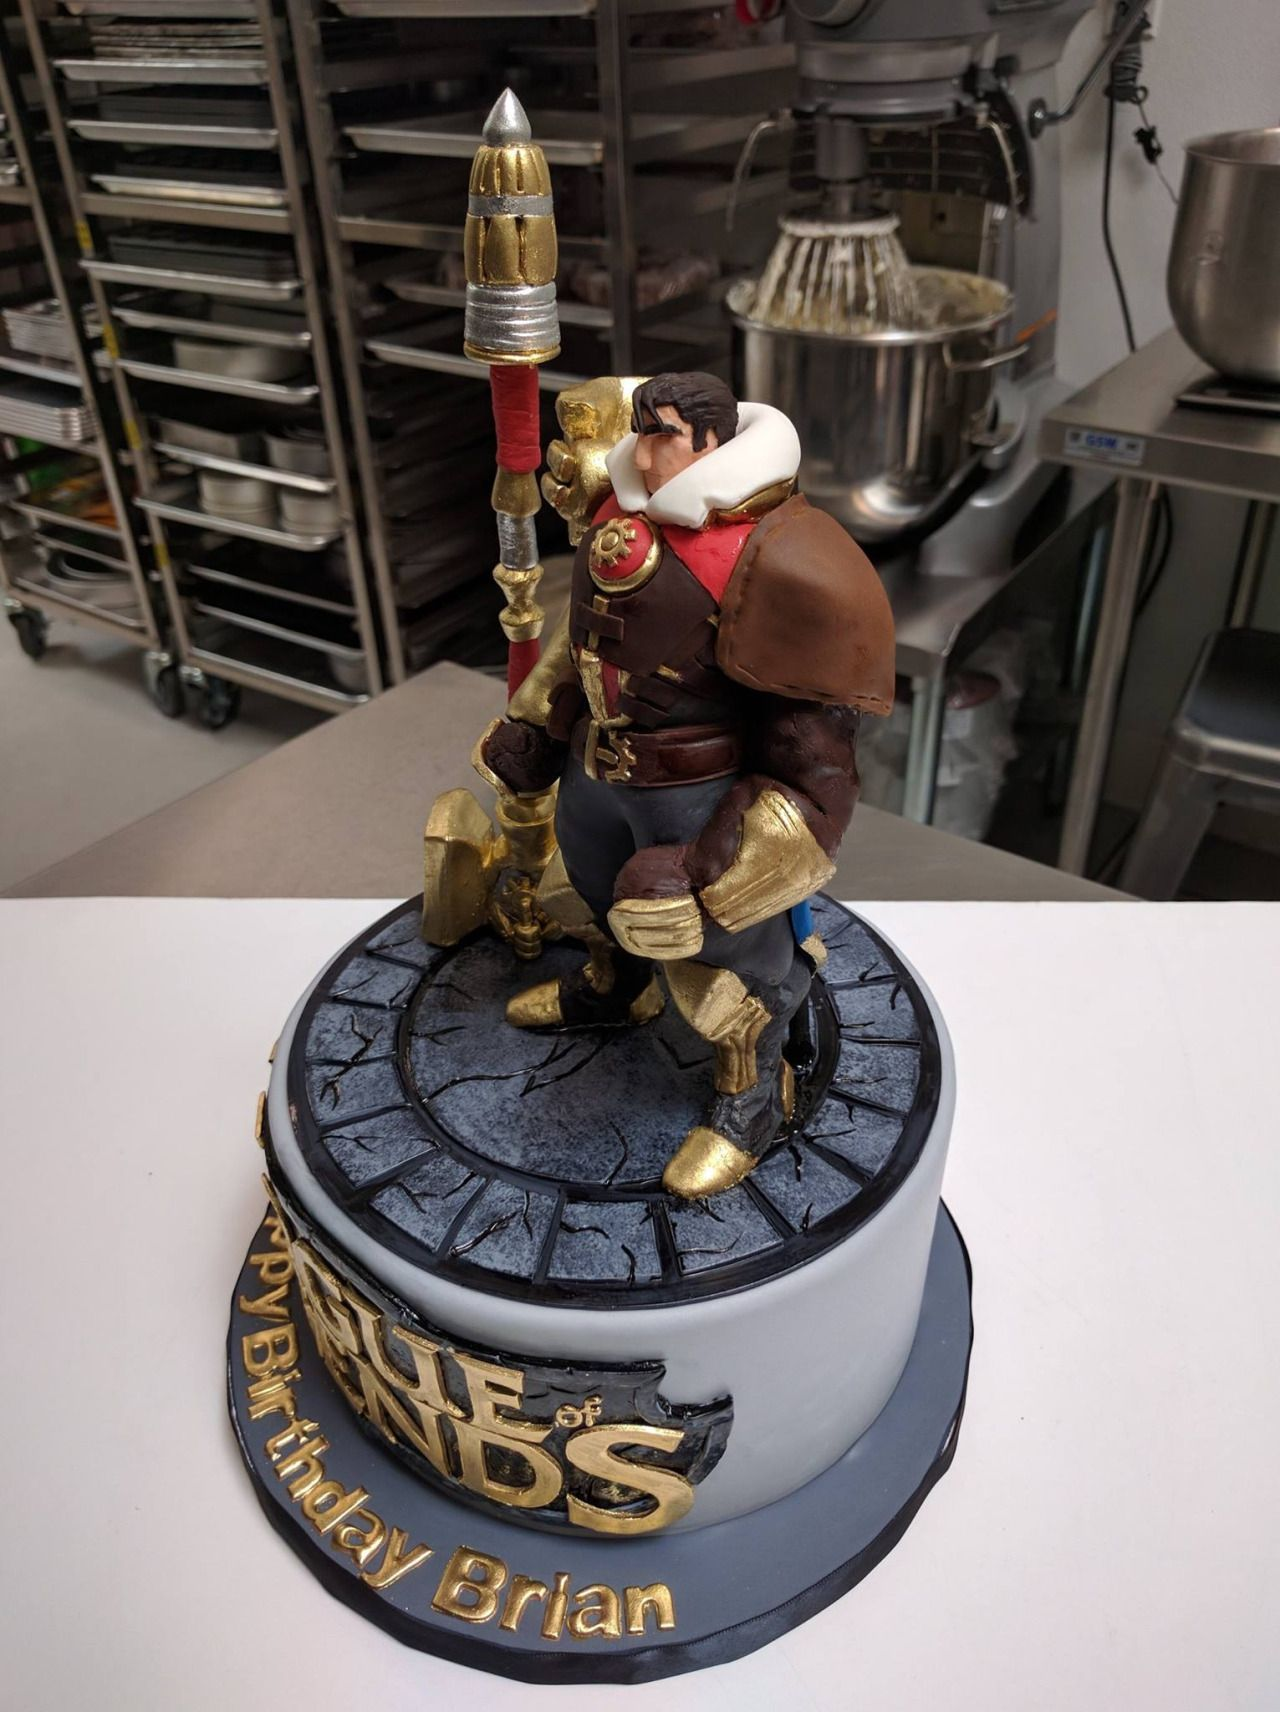 Some Work In Progress Photos Of The League Of Legends Cake